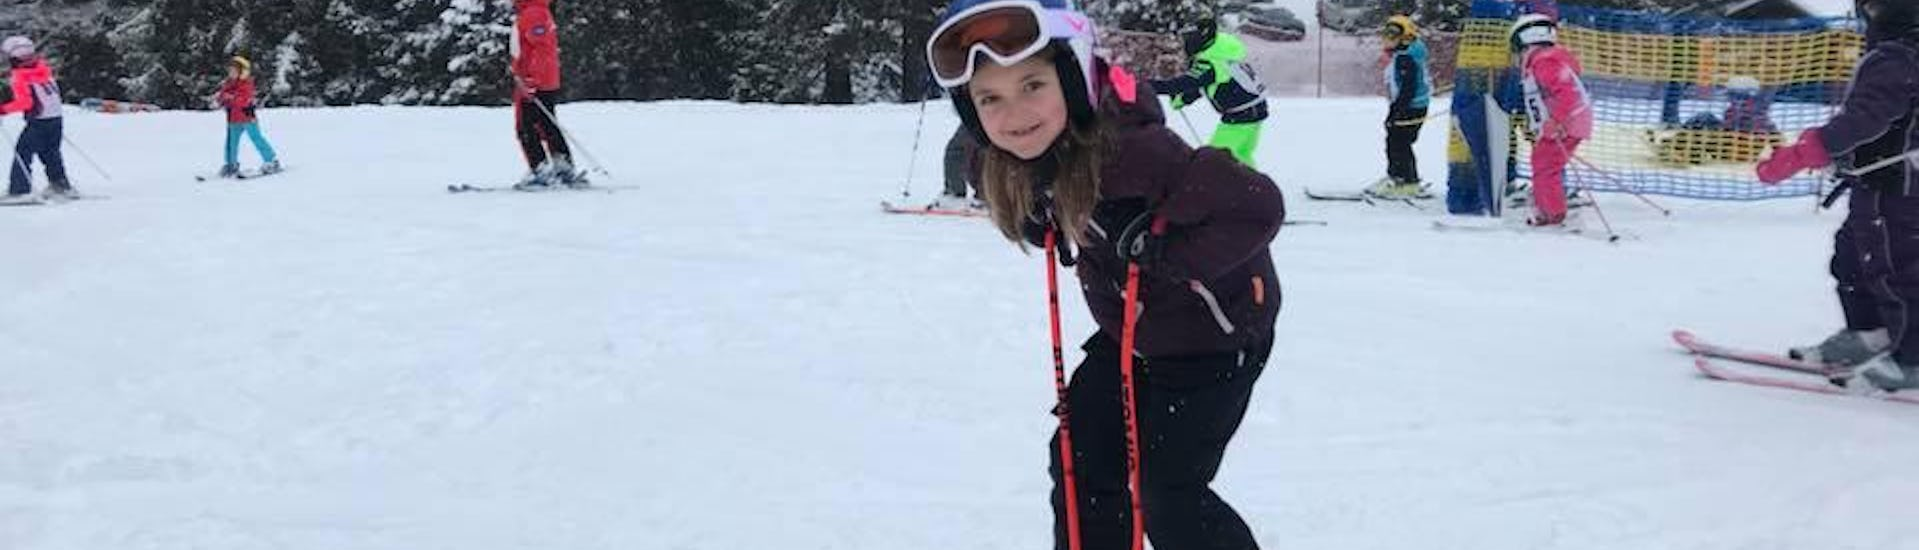 "Ski Lessons ""Miniclub All-in-One"" (3-6 years) - All Levels"